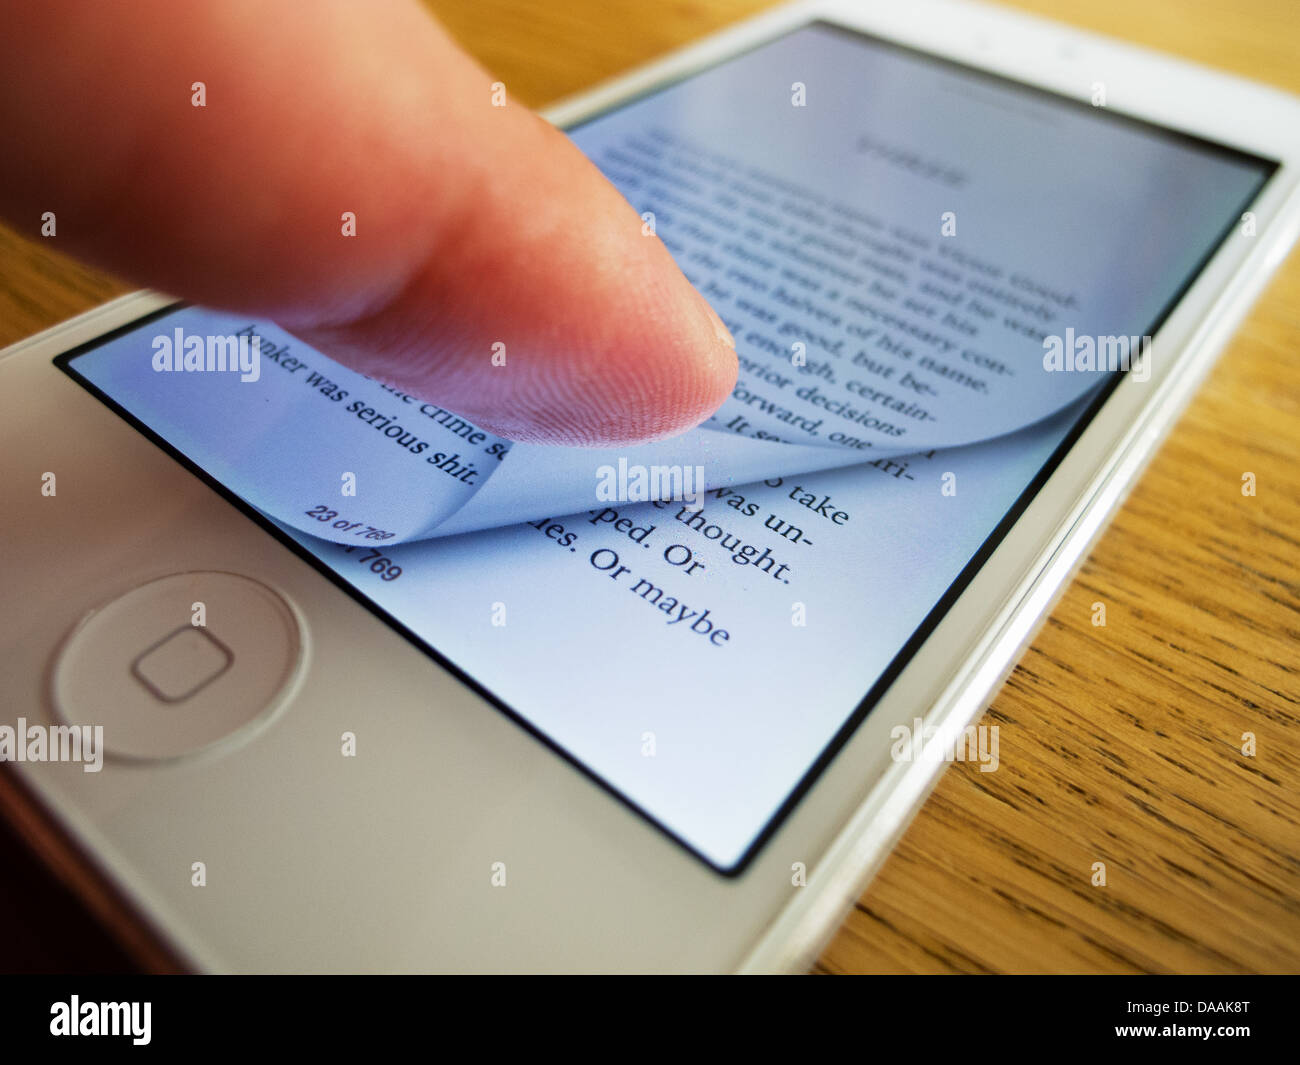 Detail of iPhone 5 smart phone screen showing iBooks ebook reader with page turning Stock Photo